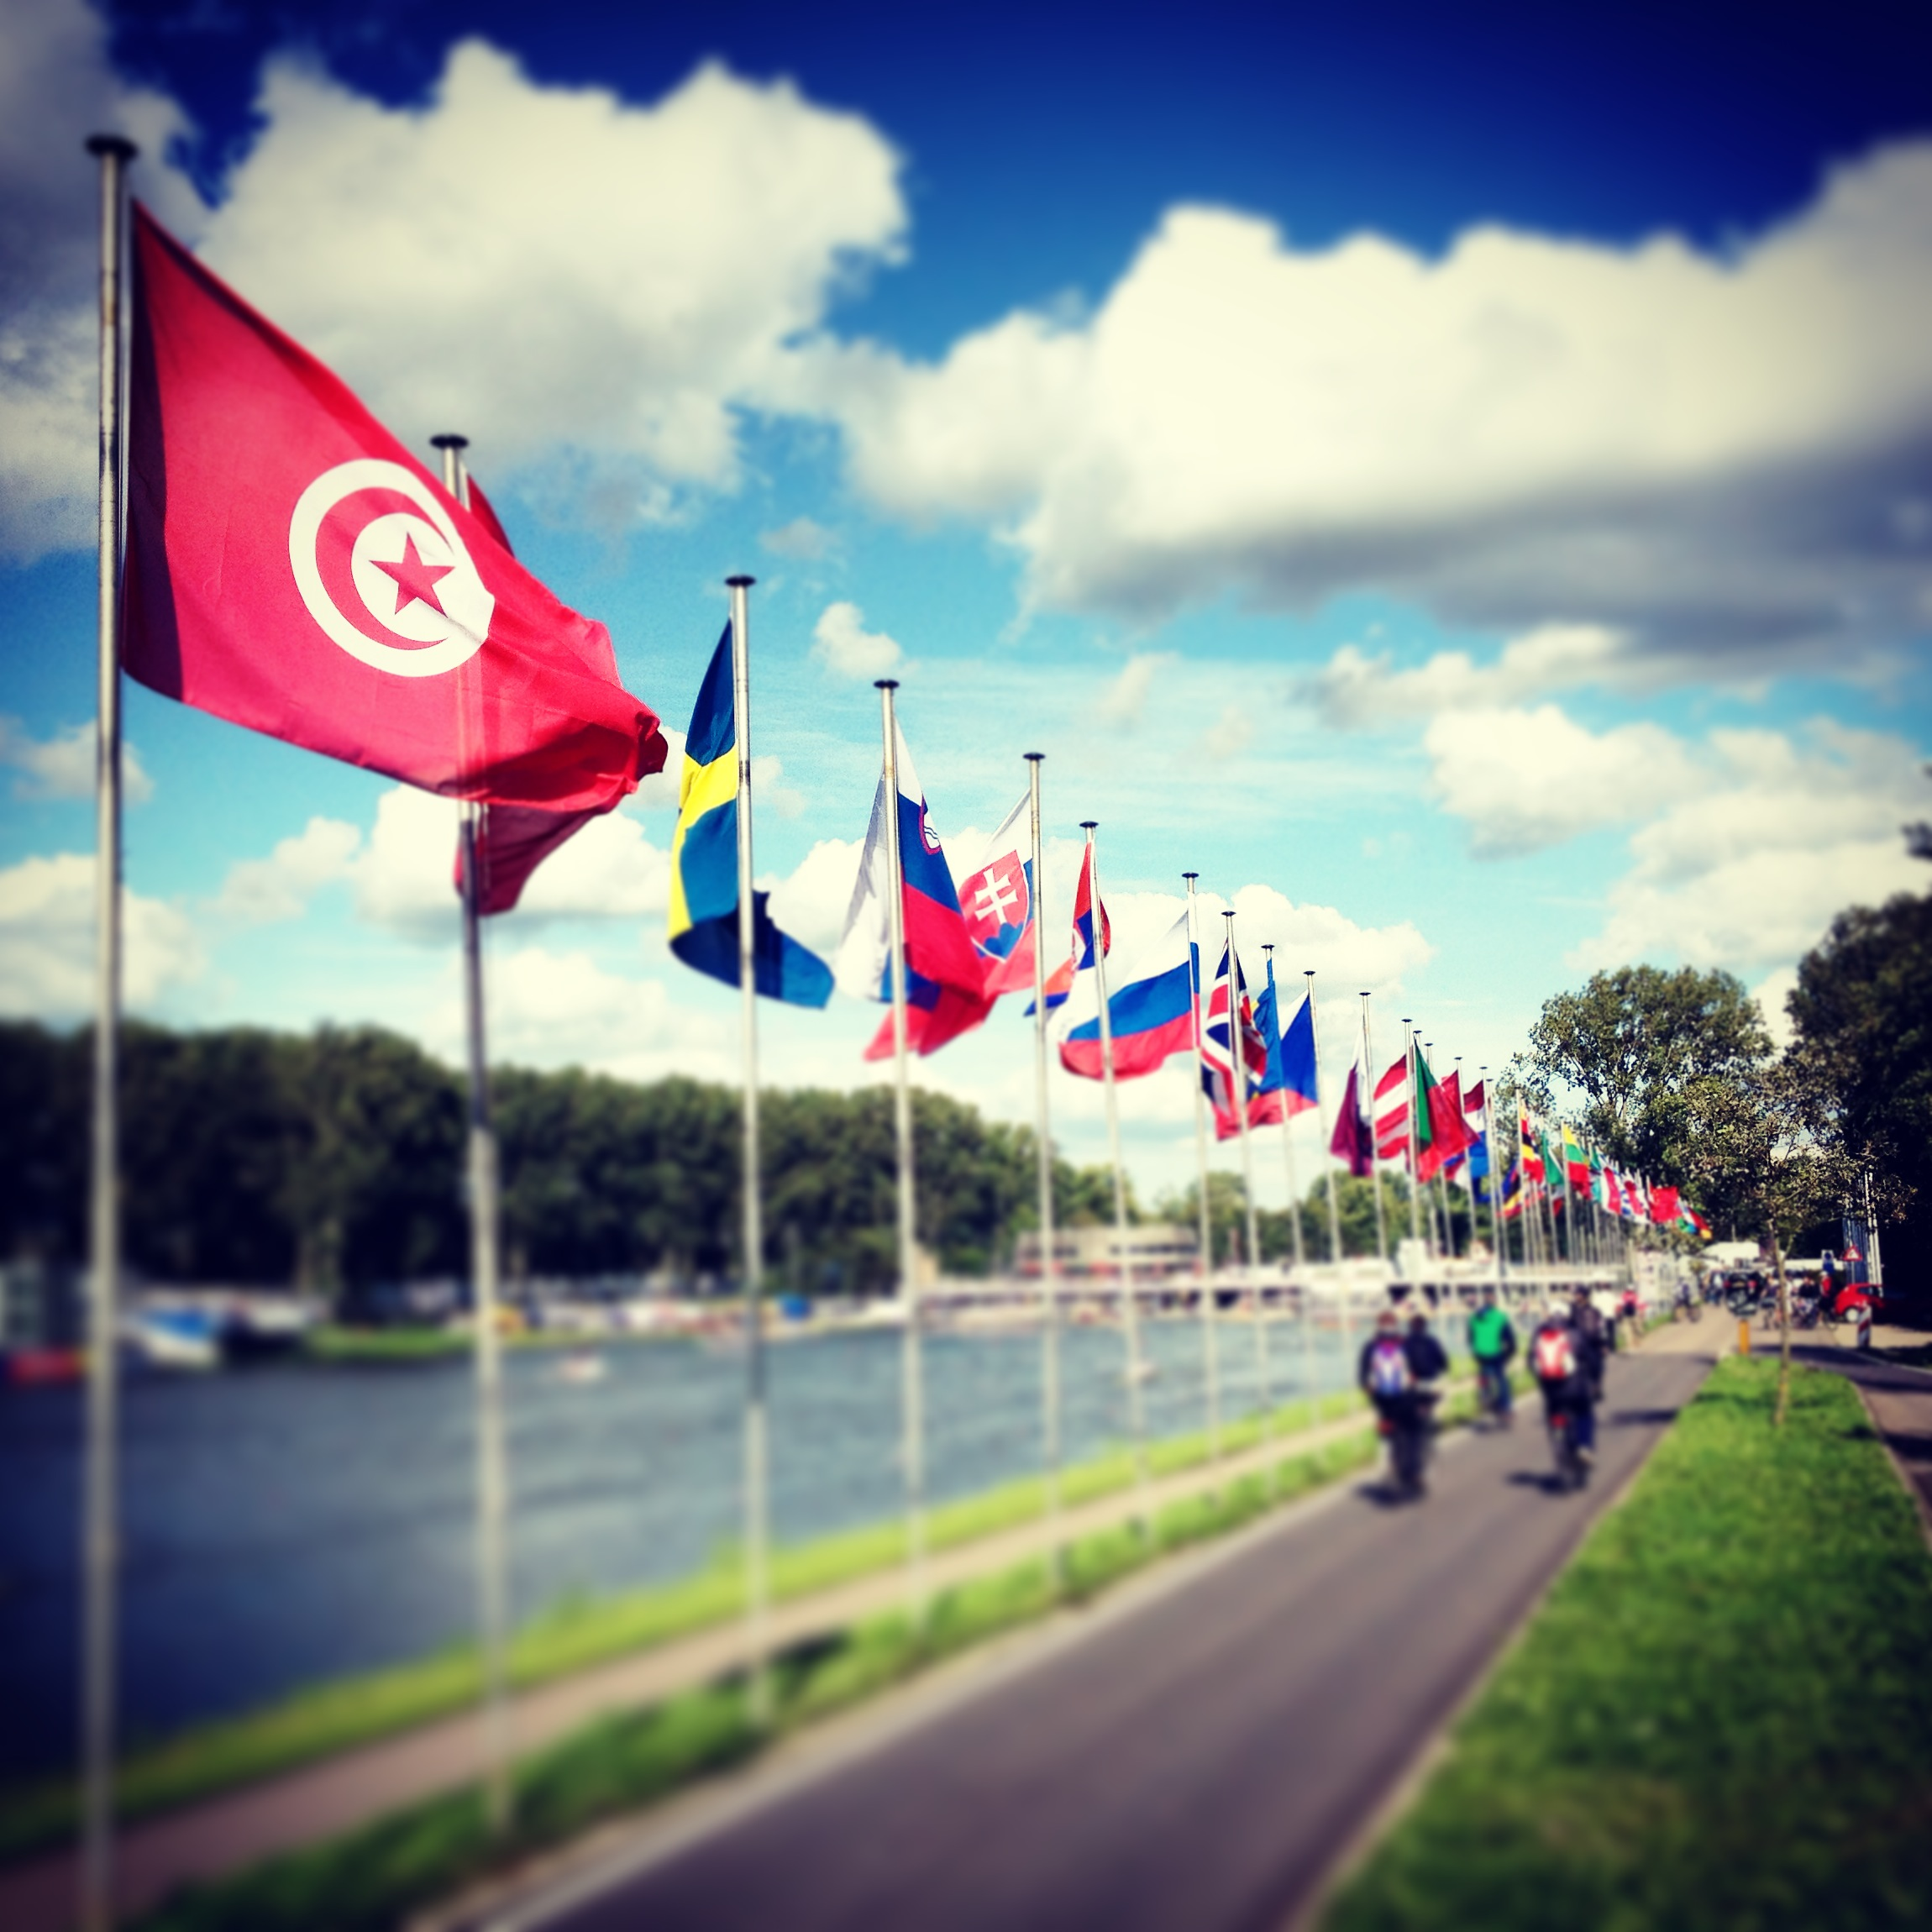 Where all the countries meet - The flags along the course representevery nation that is there to compete.